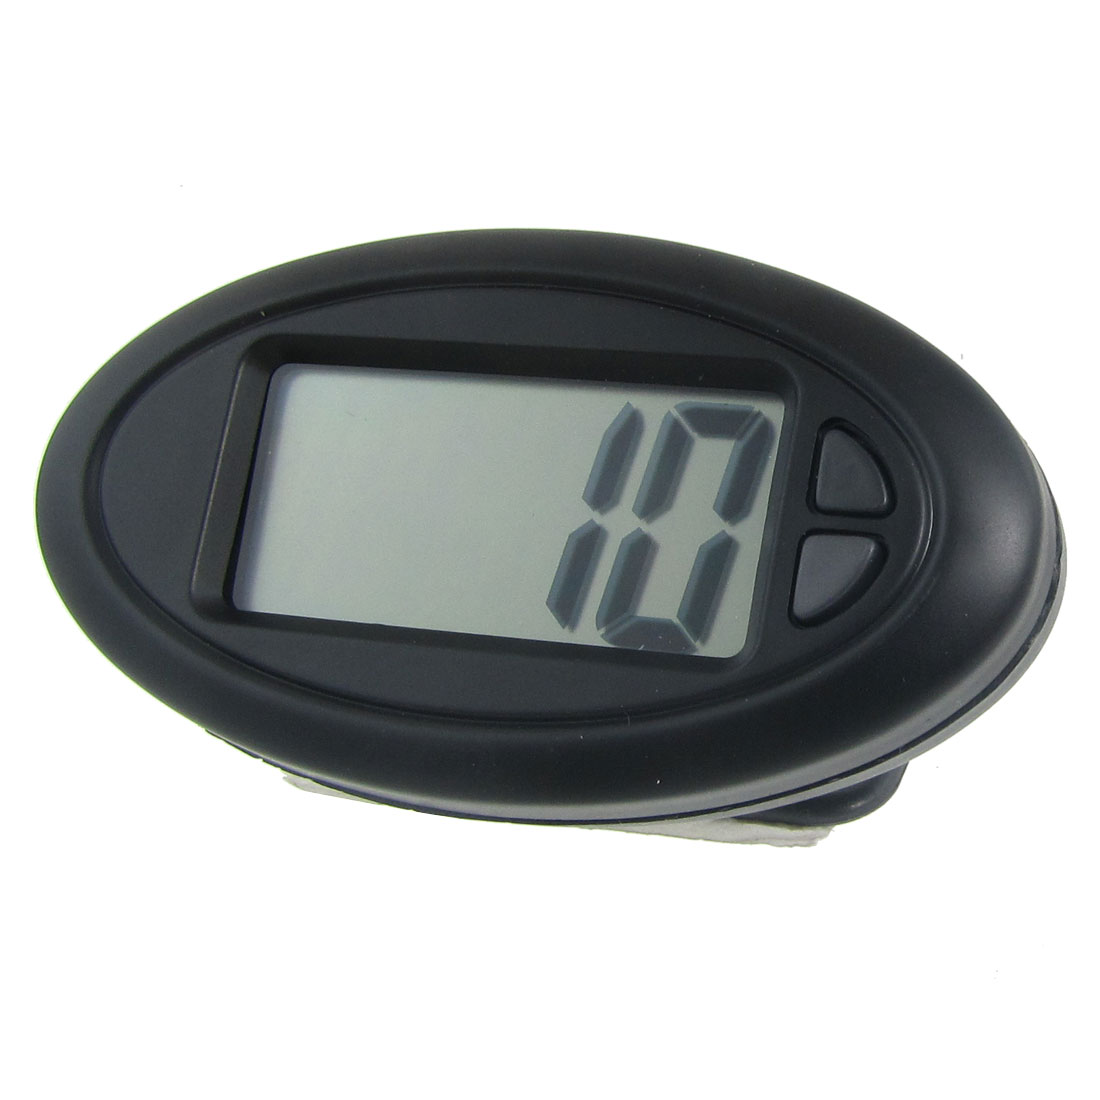 Car Dashboard Desk LCD Digital Clock w Back Self Adhesive